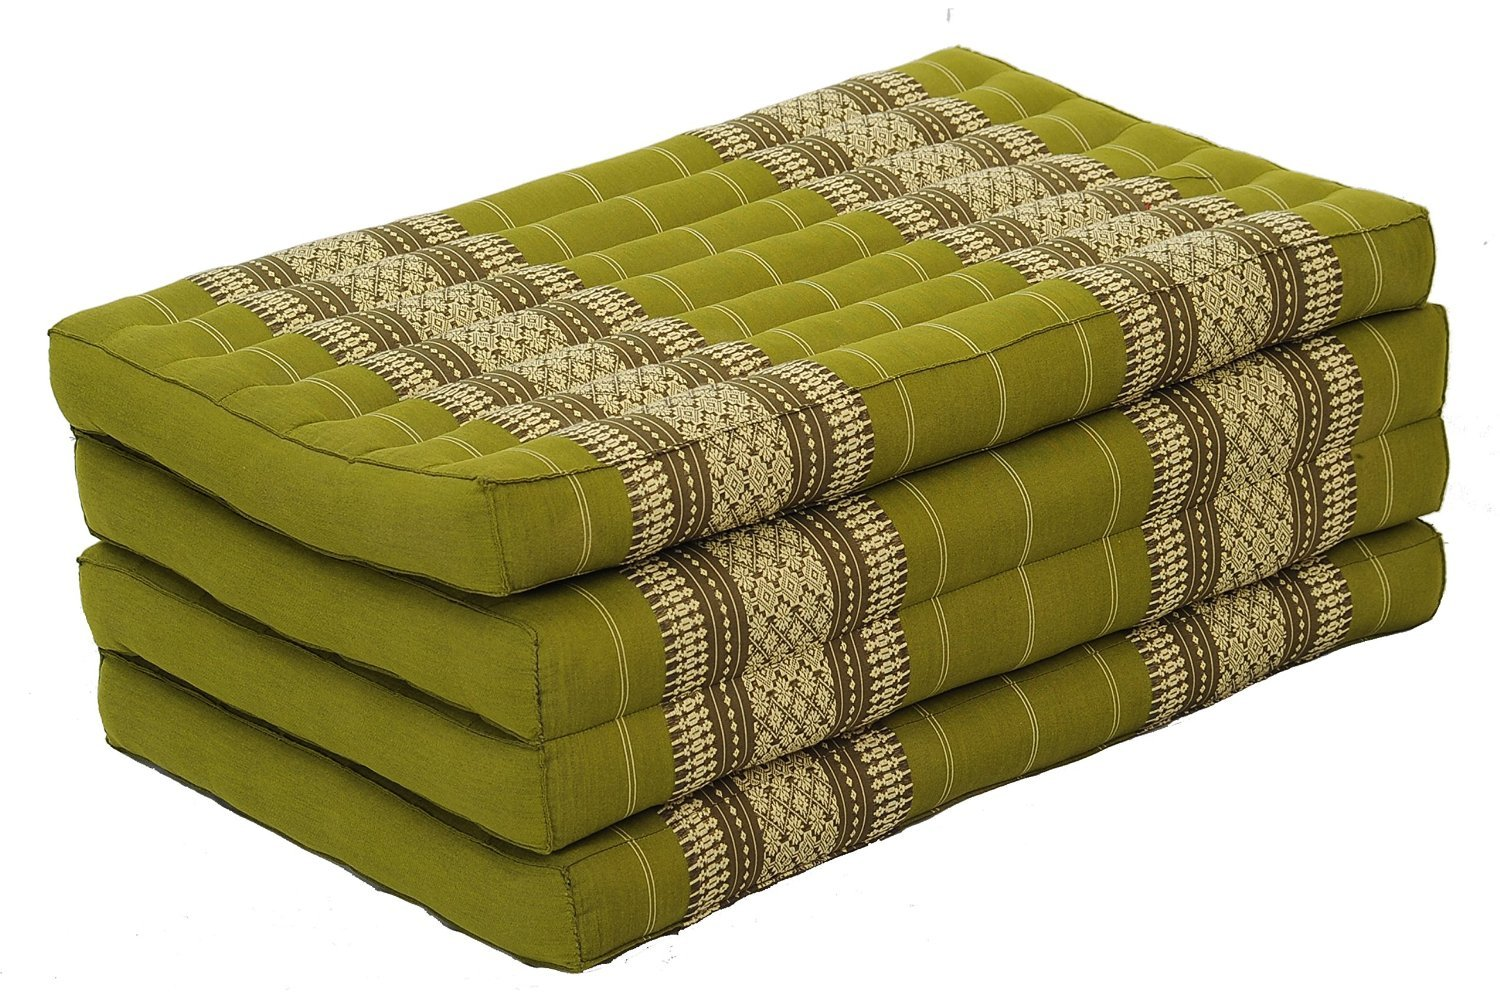 Thai Massage Mat XL, 82x46x3 inches, Kapok Fabric, Green Bamboo , Premium Double Stitched by thailand kaikeng